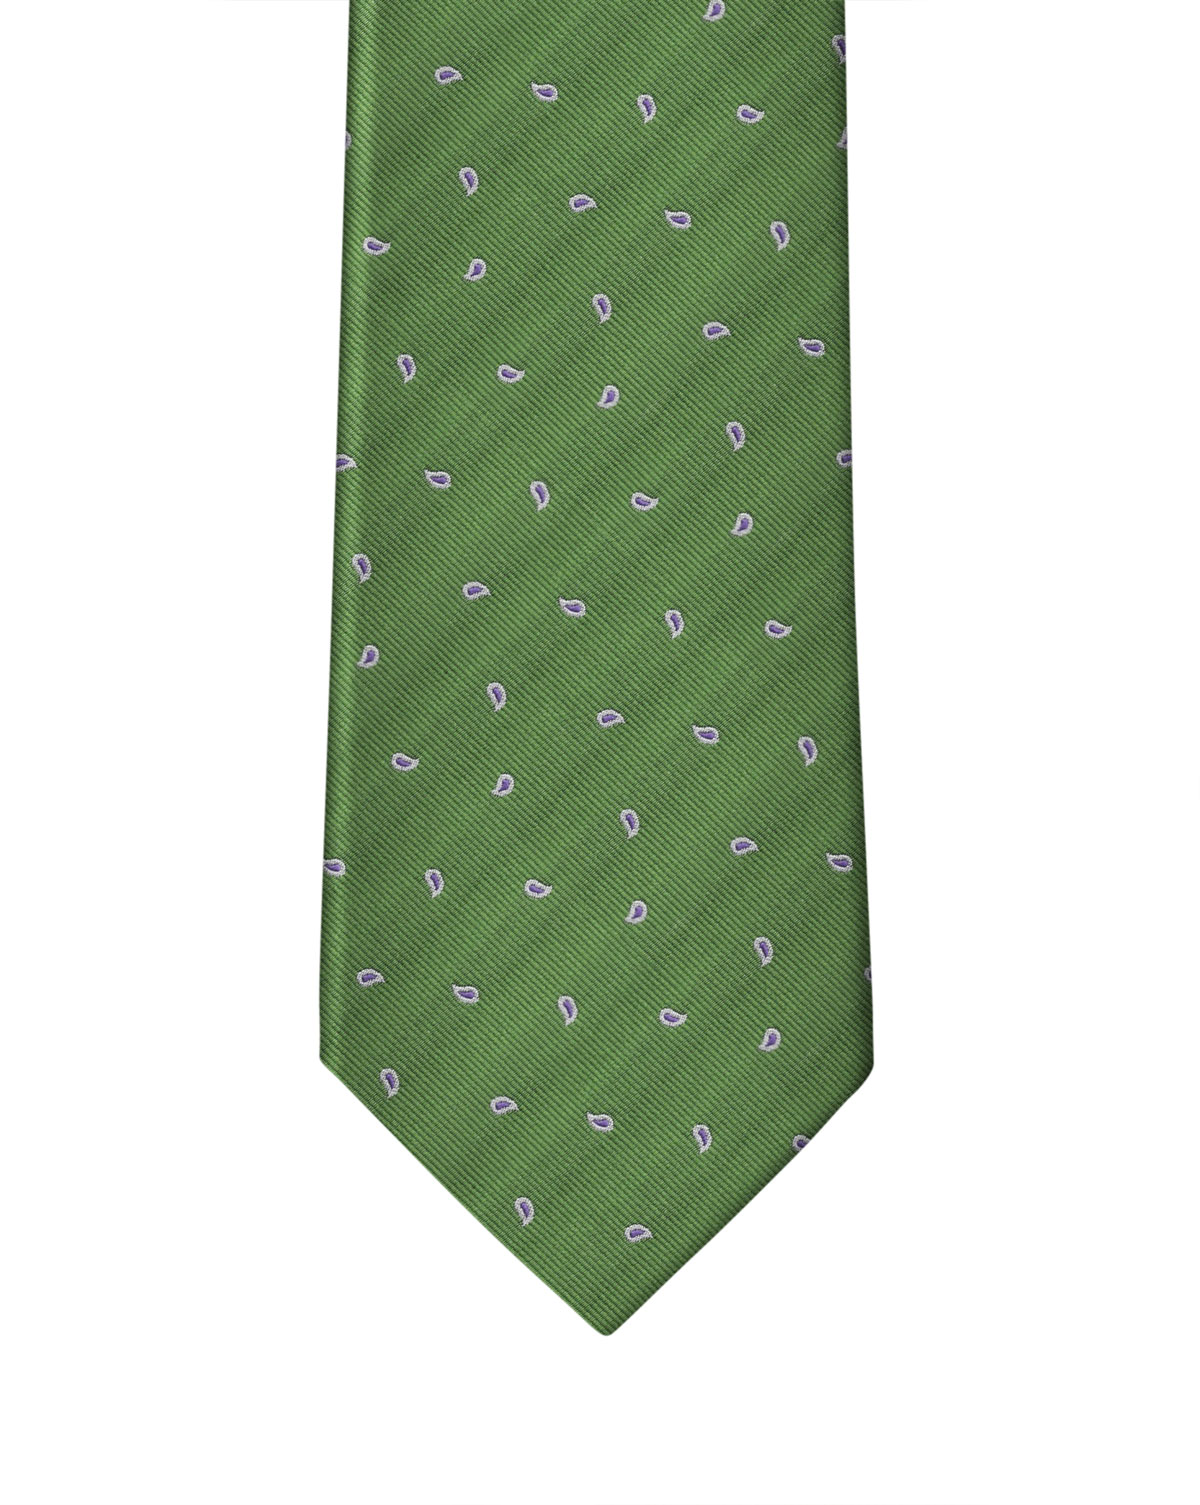 Emerald Green Small Pine Neat Necktie